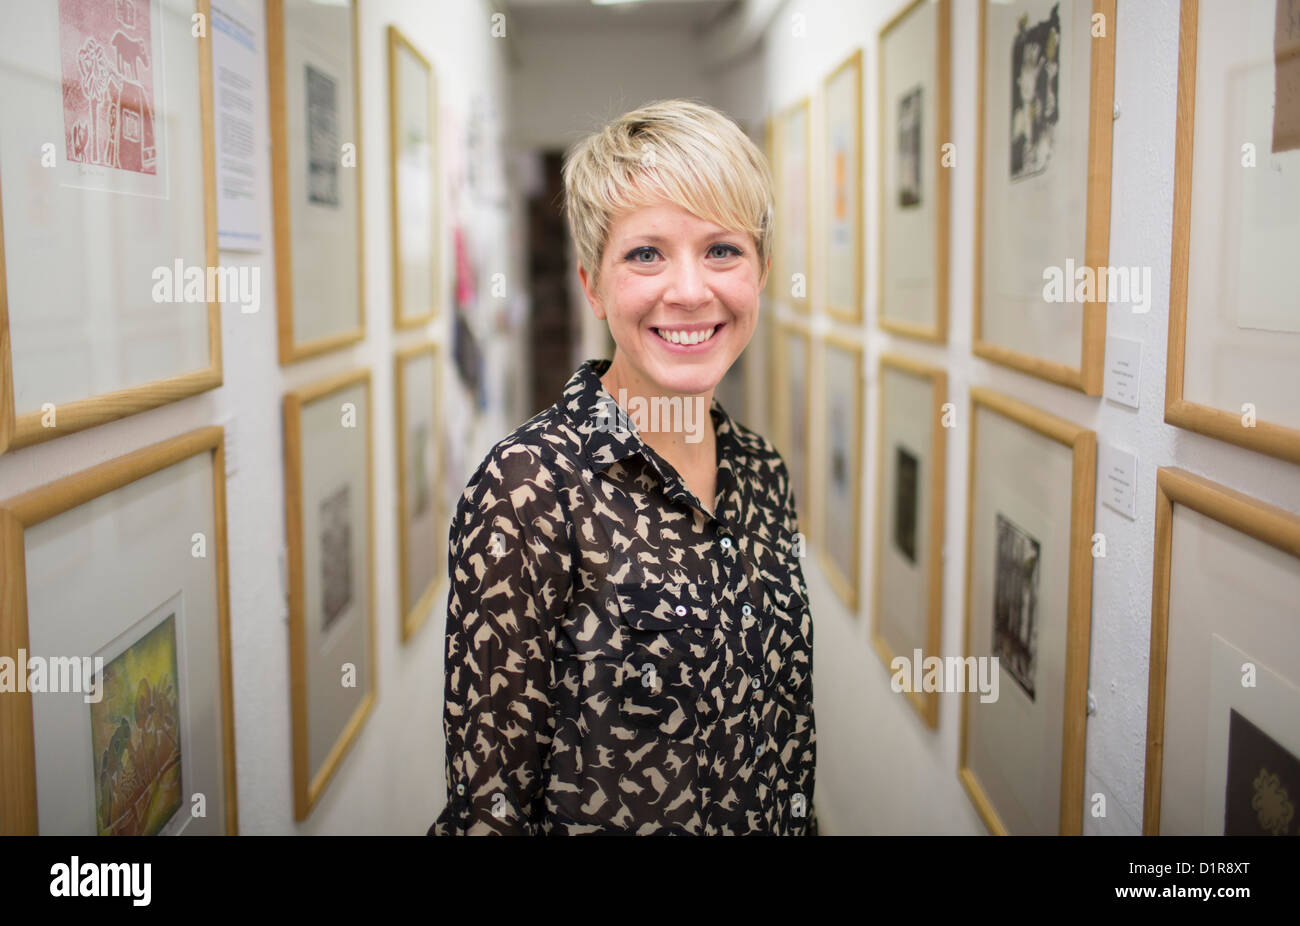 Dylan Thomas Prize 2012 finalist Andrea Eames, author of  'The White Shadow'. Stock Photo